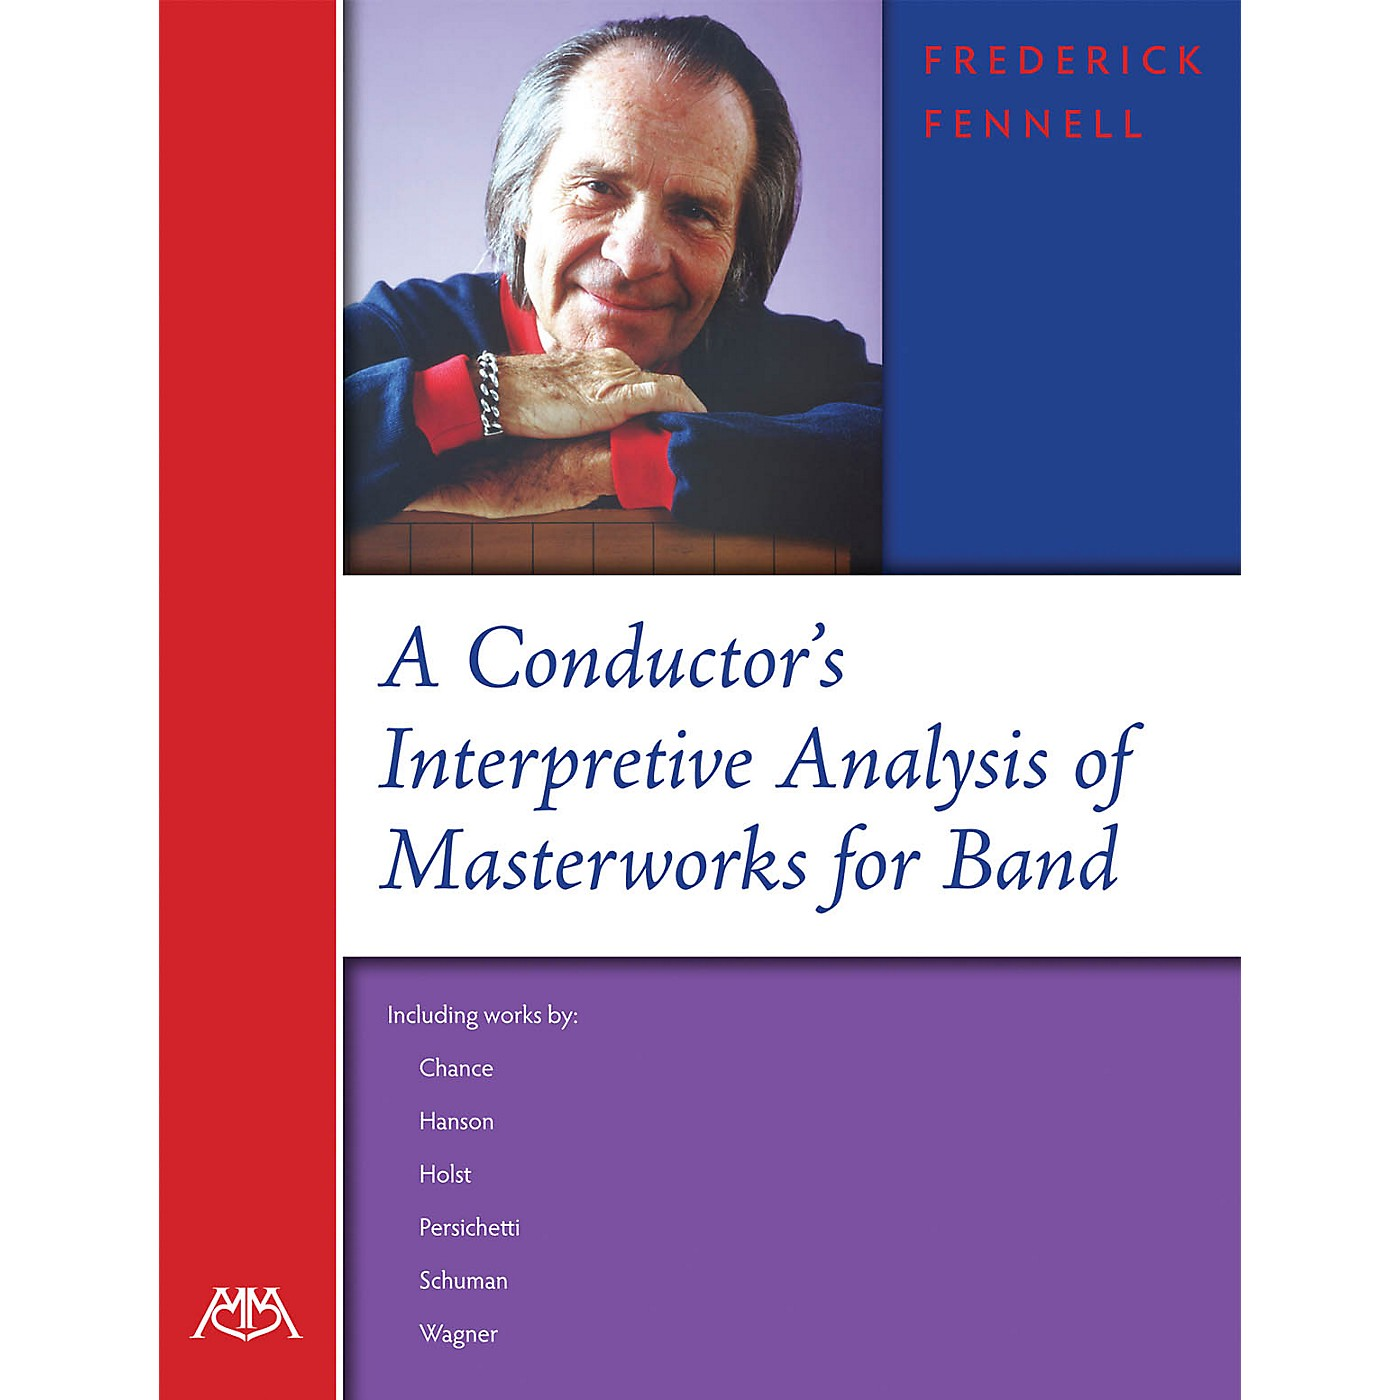 Meredith Music A Conductor's Interpretive Analysis of Masterworks for Band Concert Band Written by Frederick Fennell thumbnail